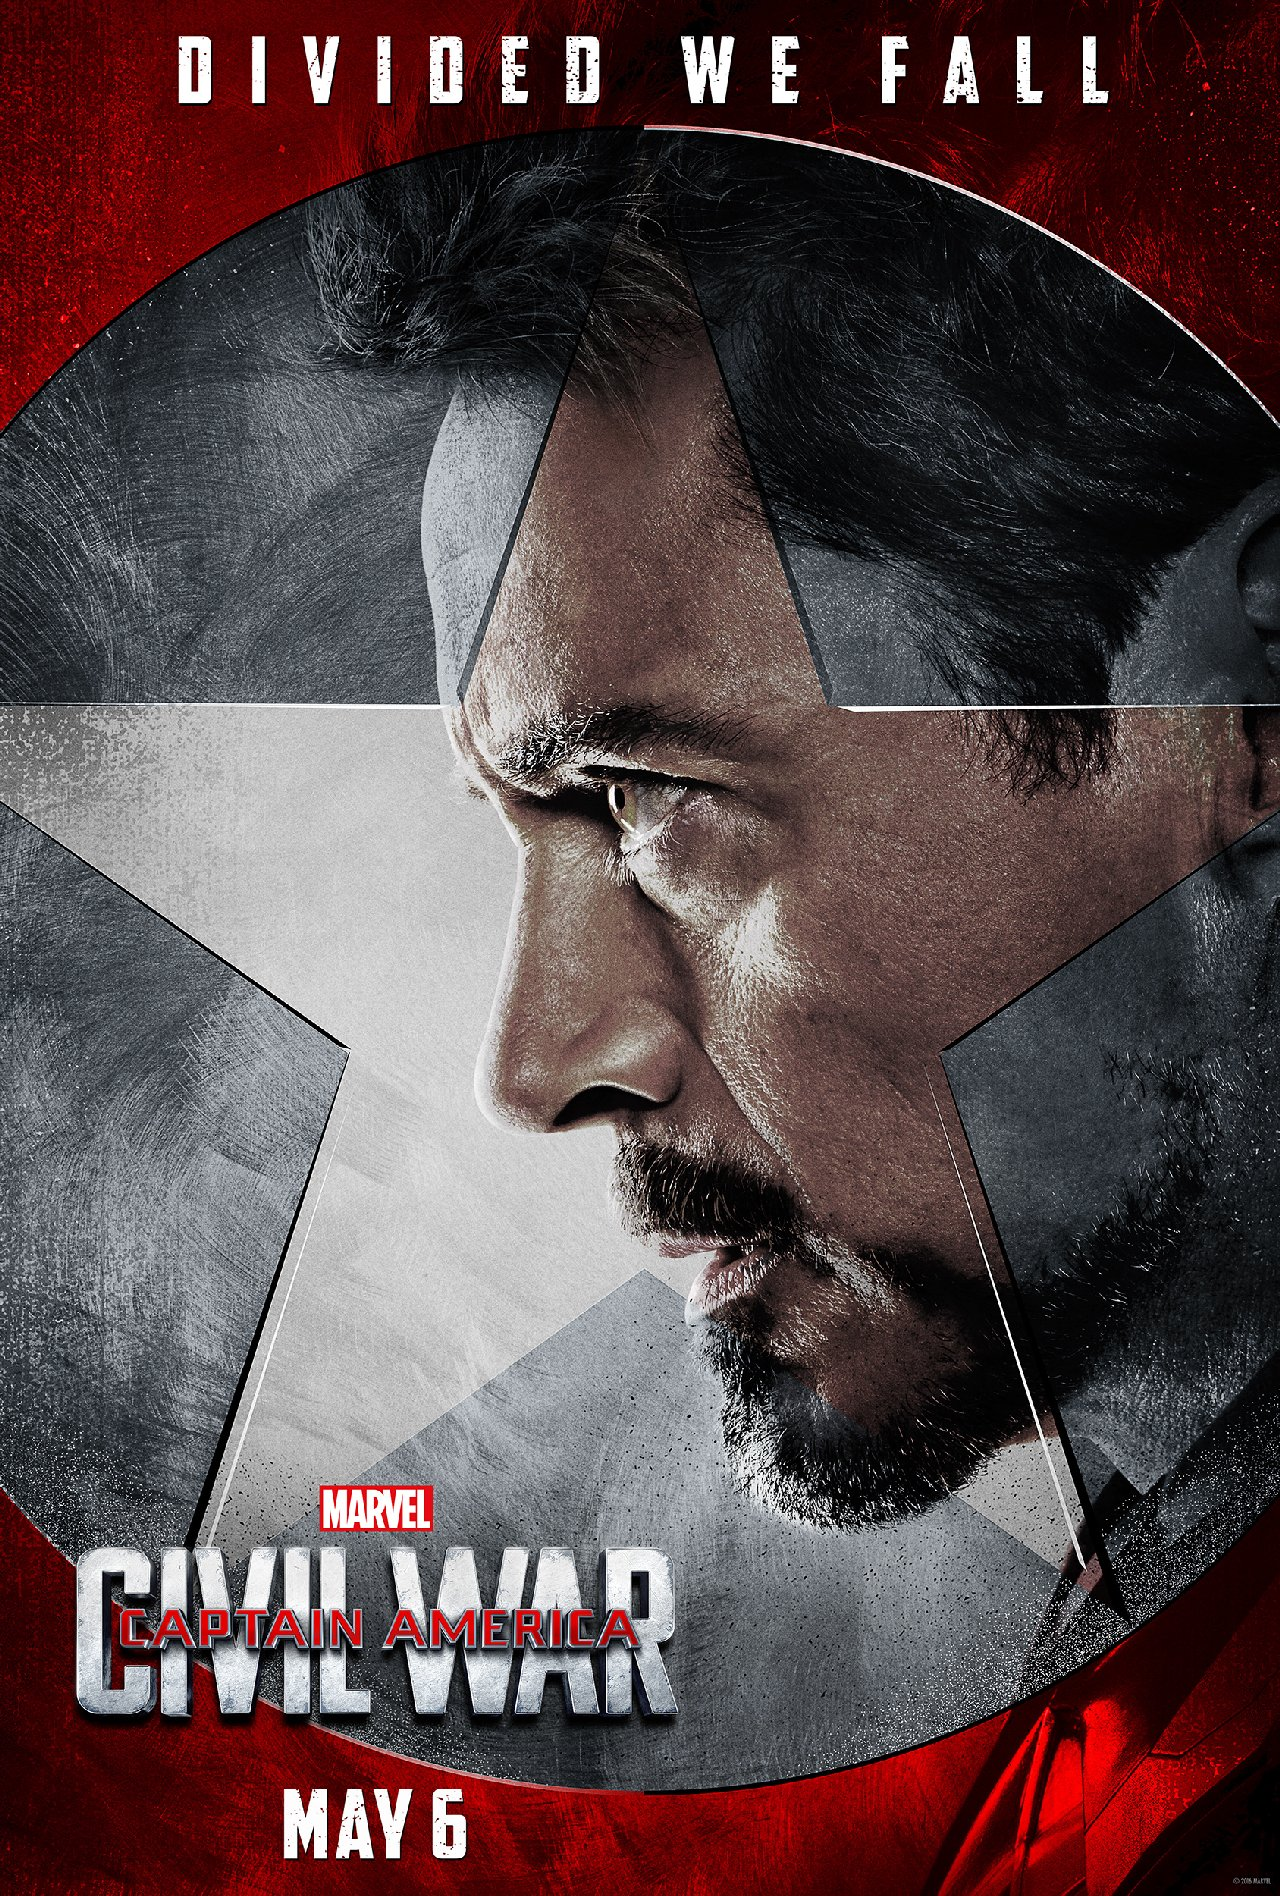 The-First-Avenger-Civil-War-3D-charakterposter-team-iron-man-iron-man